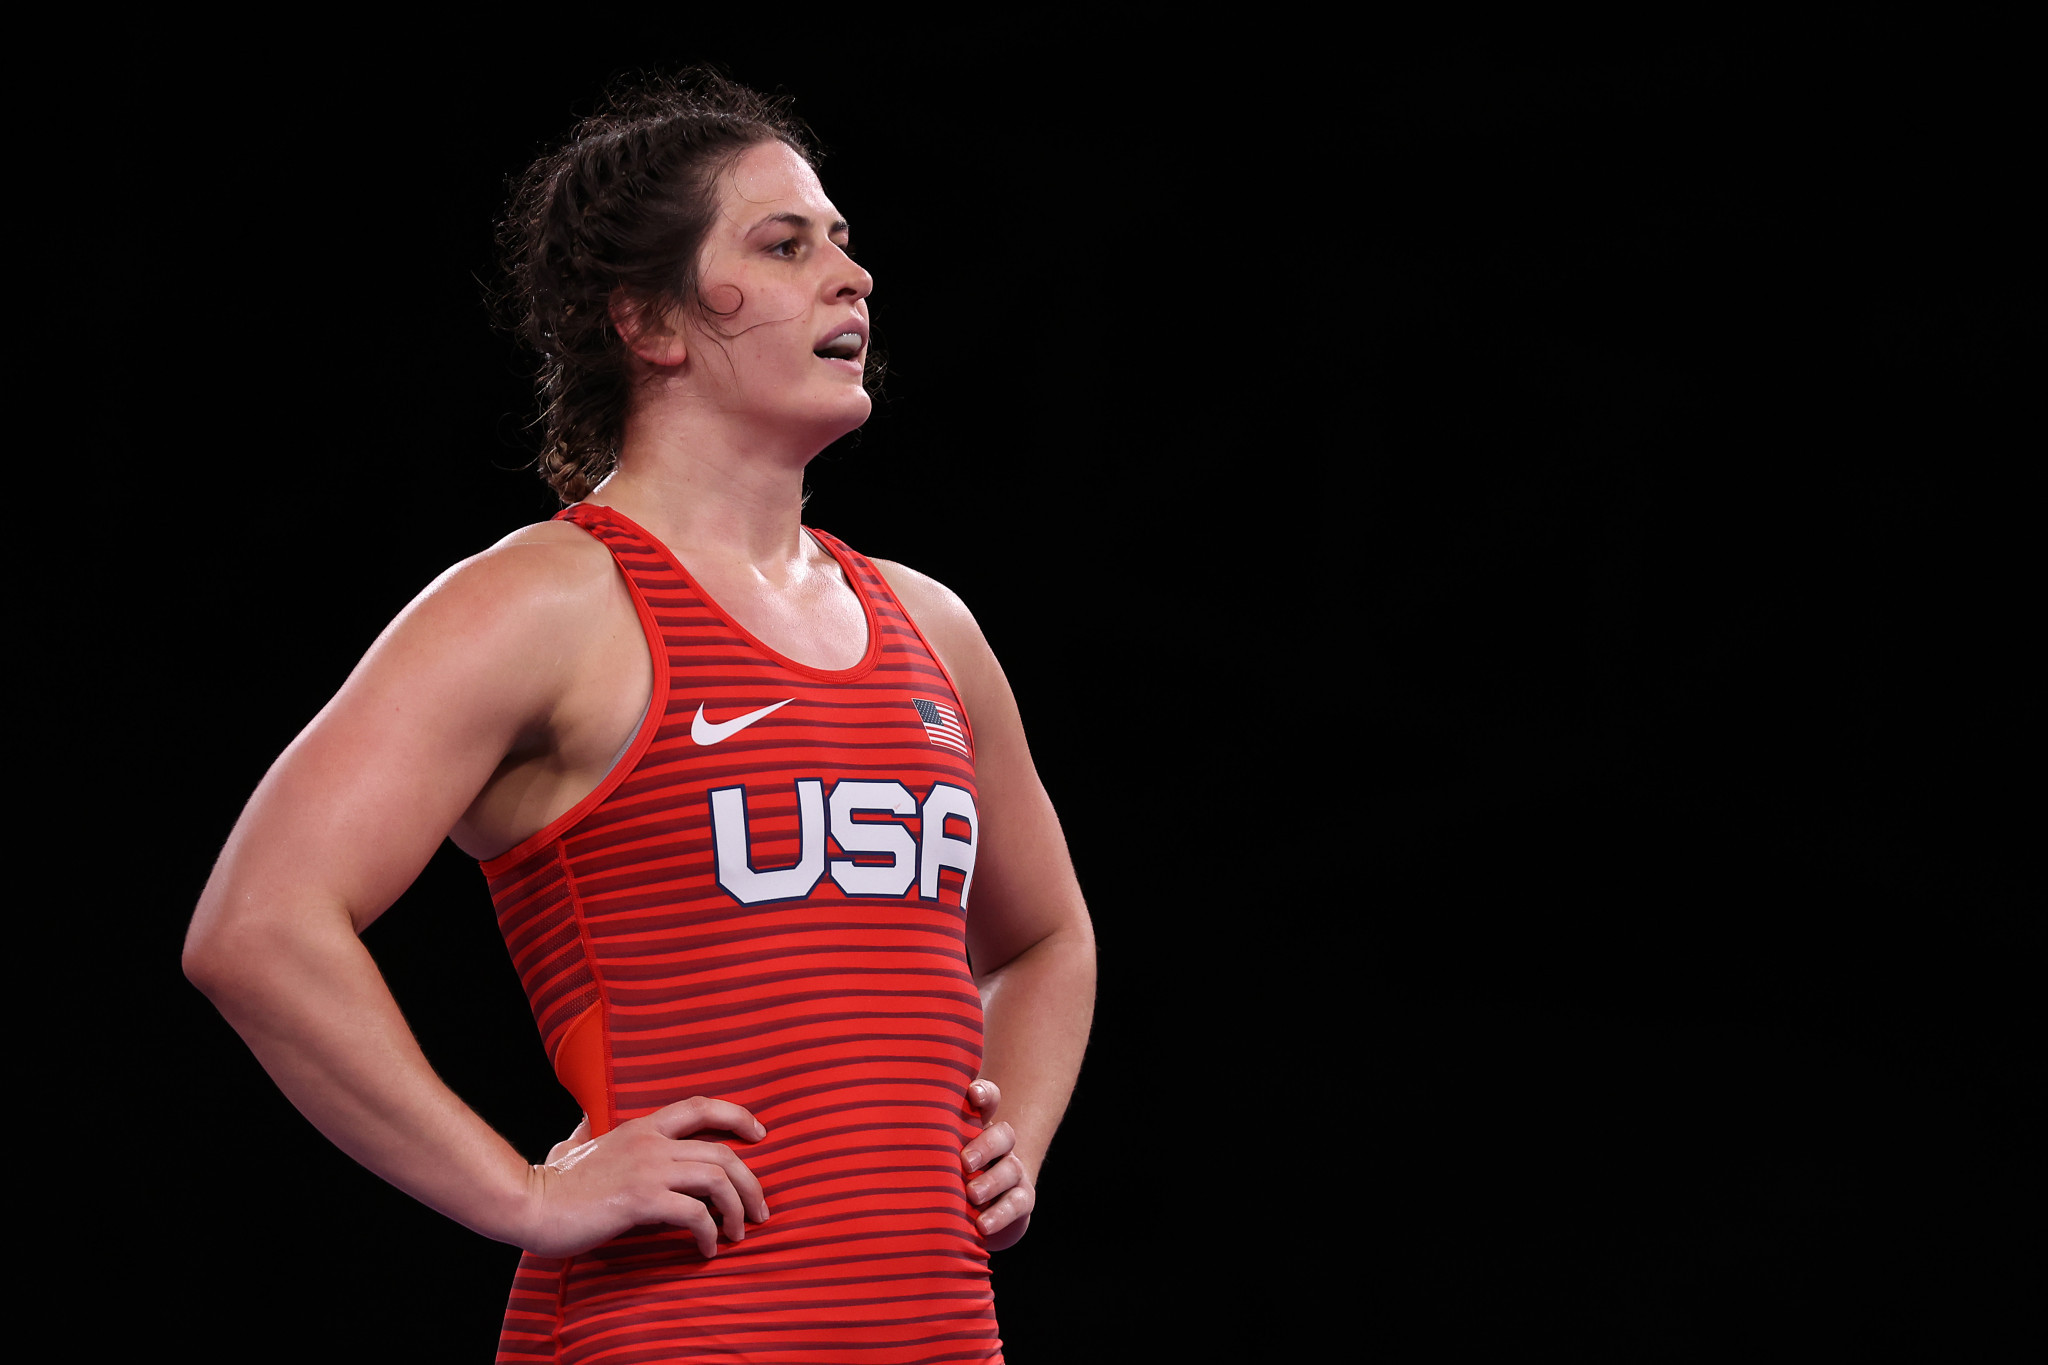 Adeline Maria Gray wins sixth title at Wrestling World Championships